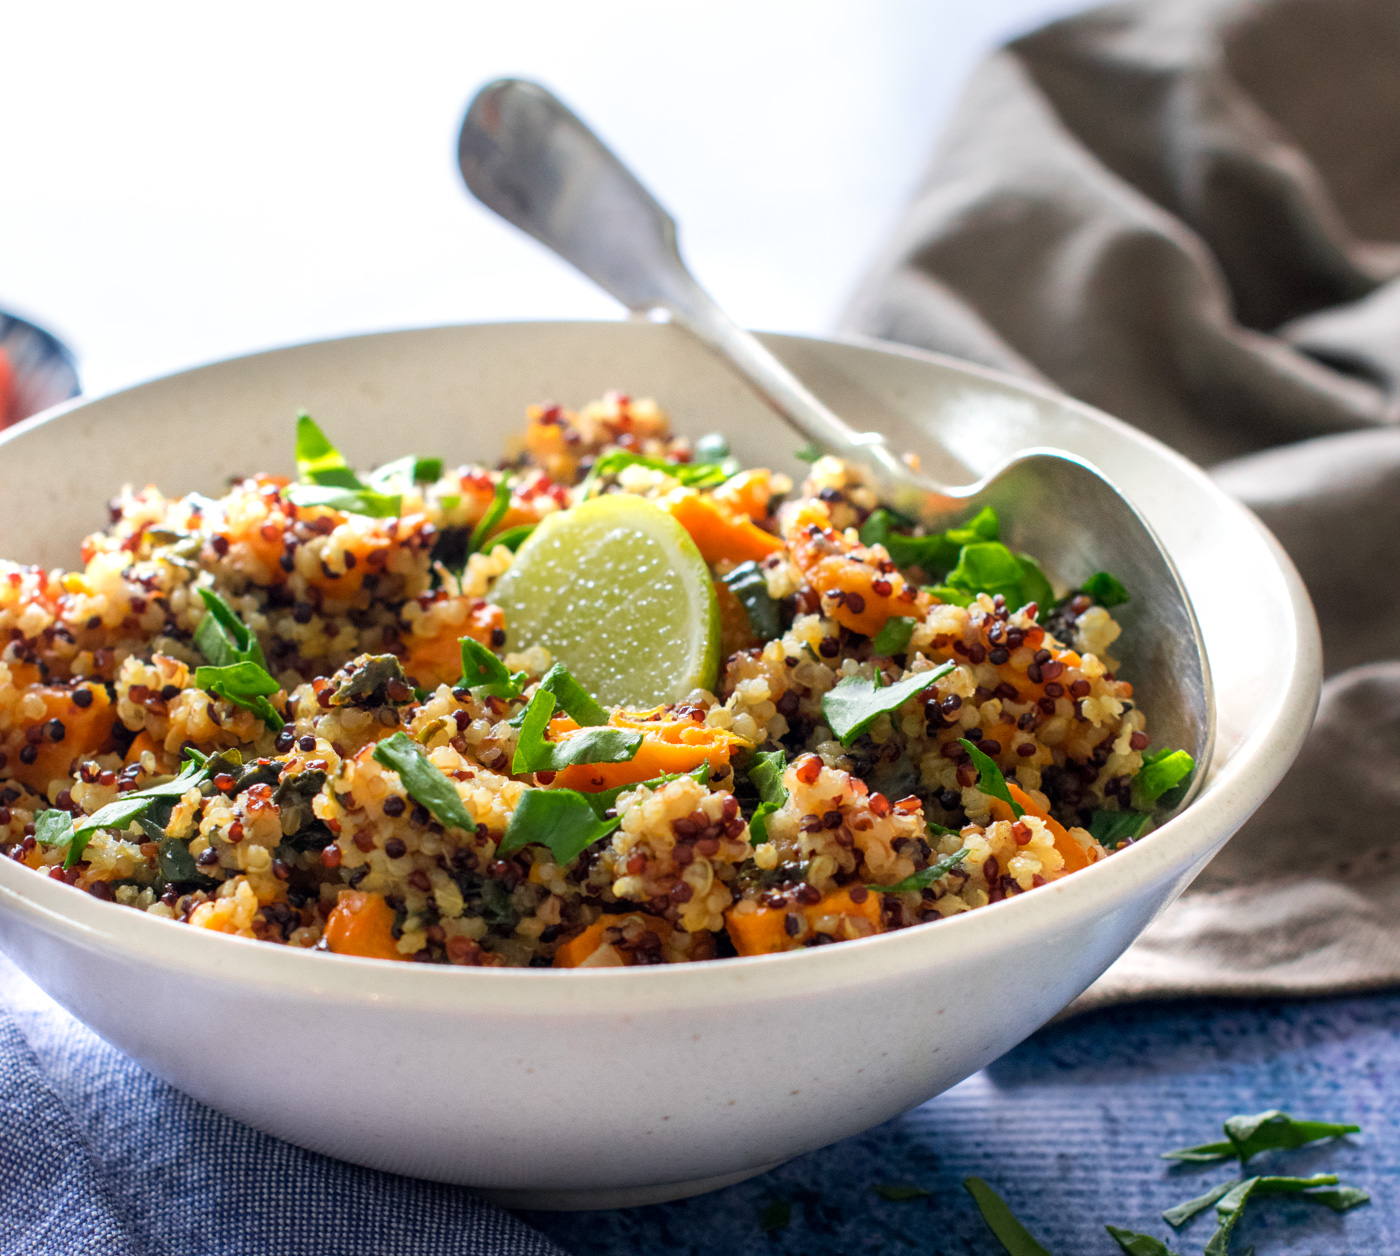 Instant pot curried quinoa spinach sweet potato under 20 minutes